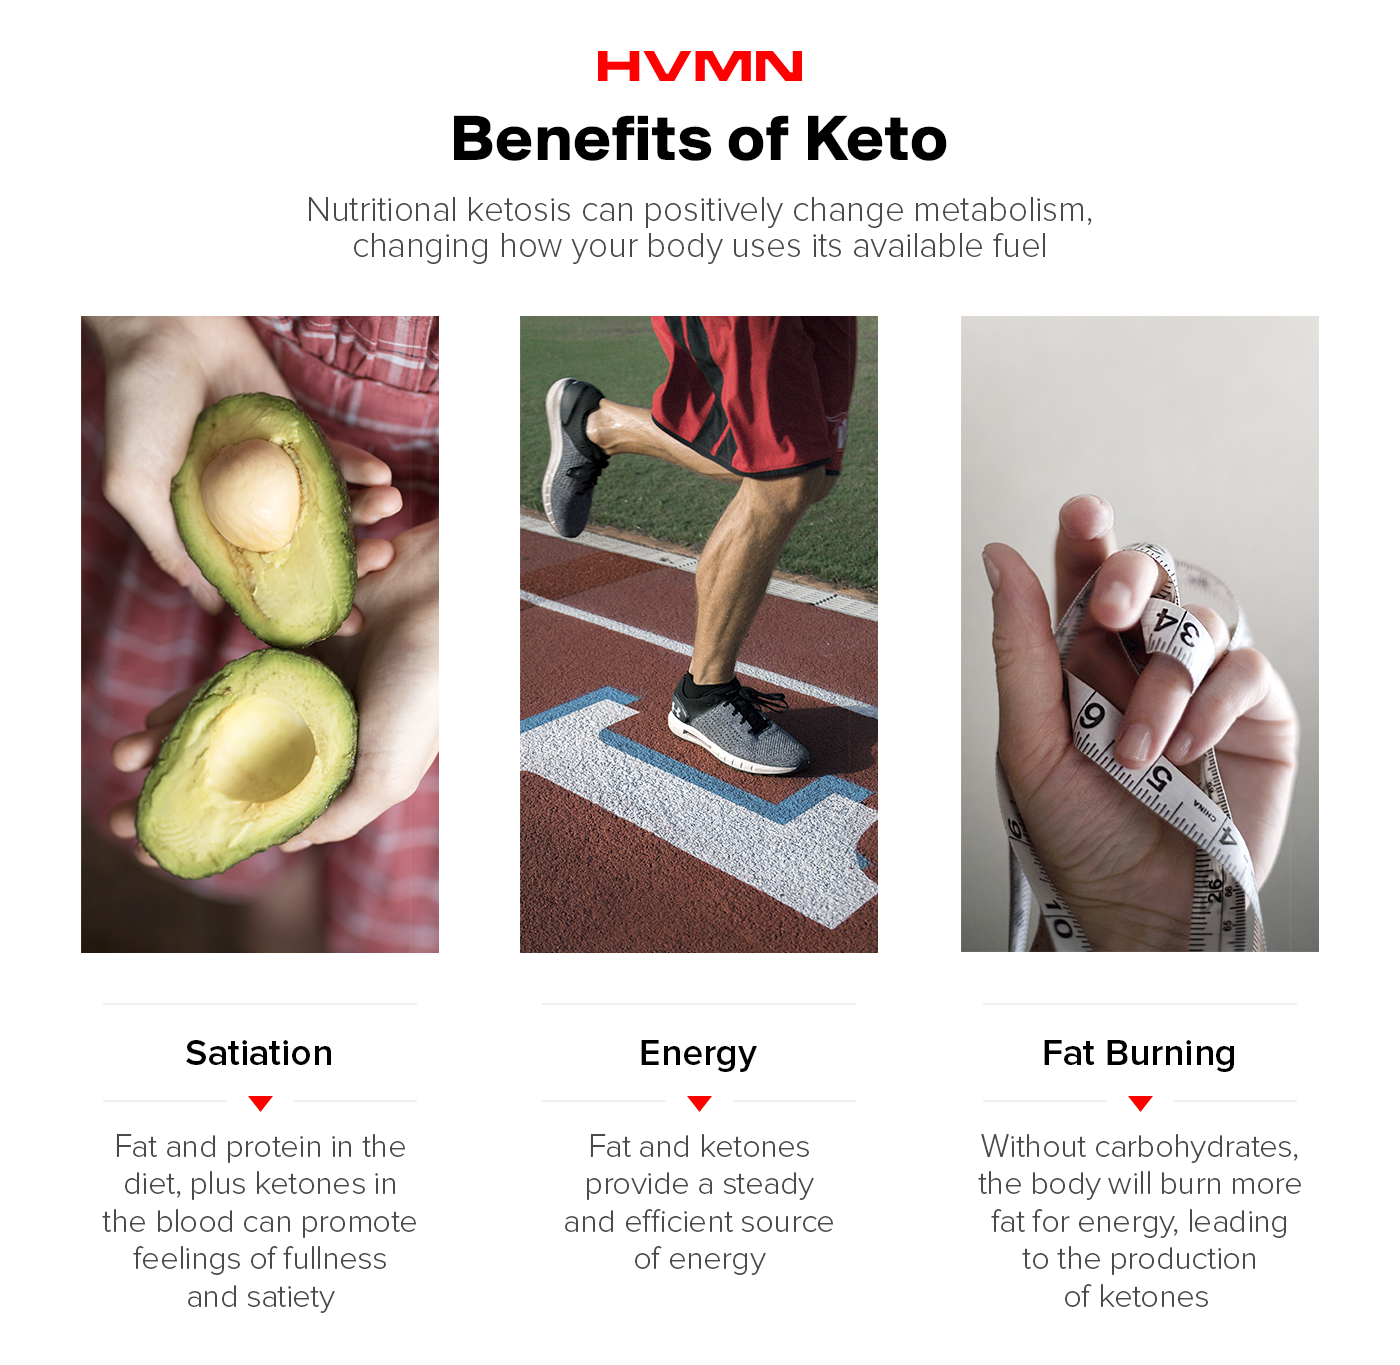 An image of an avocado showing the benefit of satiation on keto, a man running on a track showing the benefit of energy on keto and a tape measure wrapped around a hand, showing the benefit of fat burning on keto